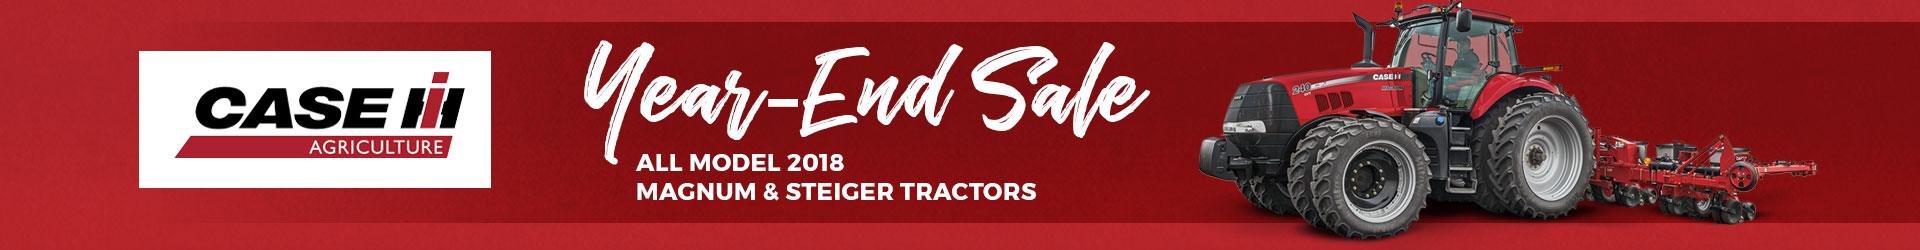 Wellington year of end sale banner 1920 x 250 px